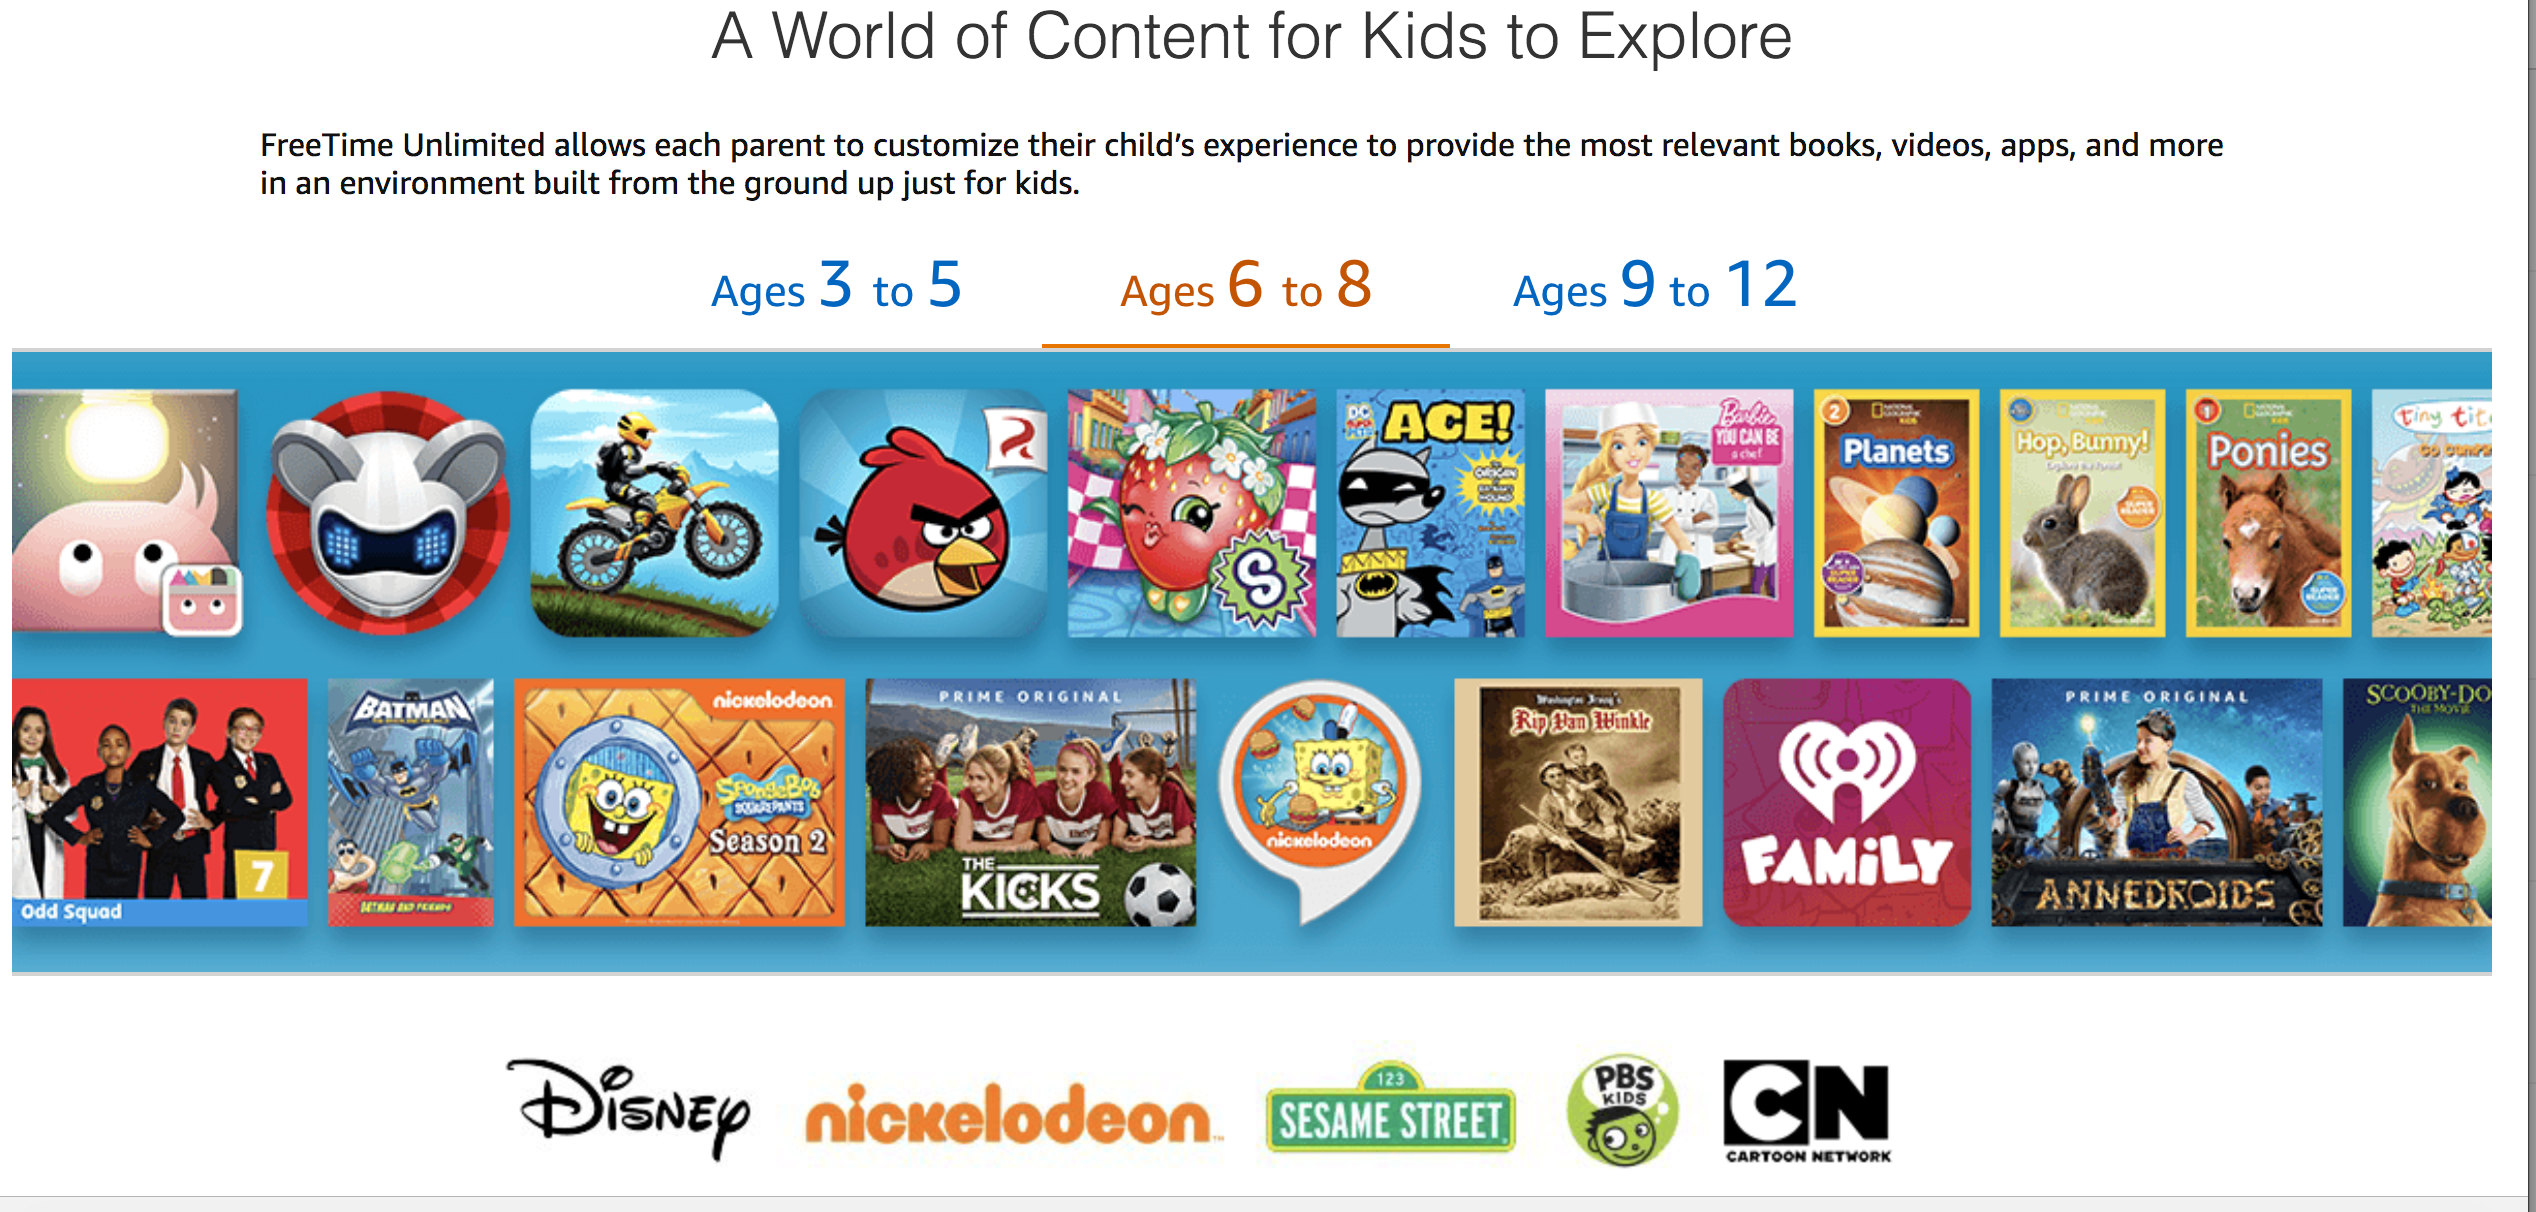 Screenshot of Amazon FreeTime Unlimited with content for 6-8 year olds